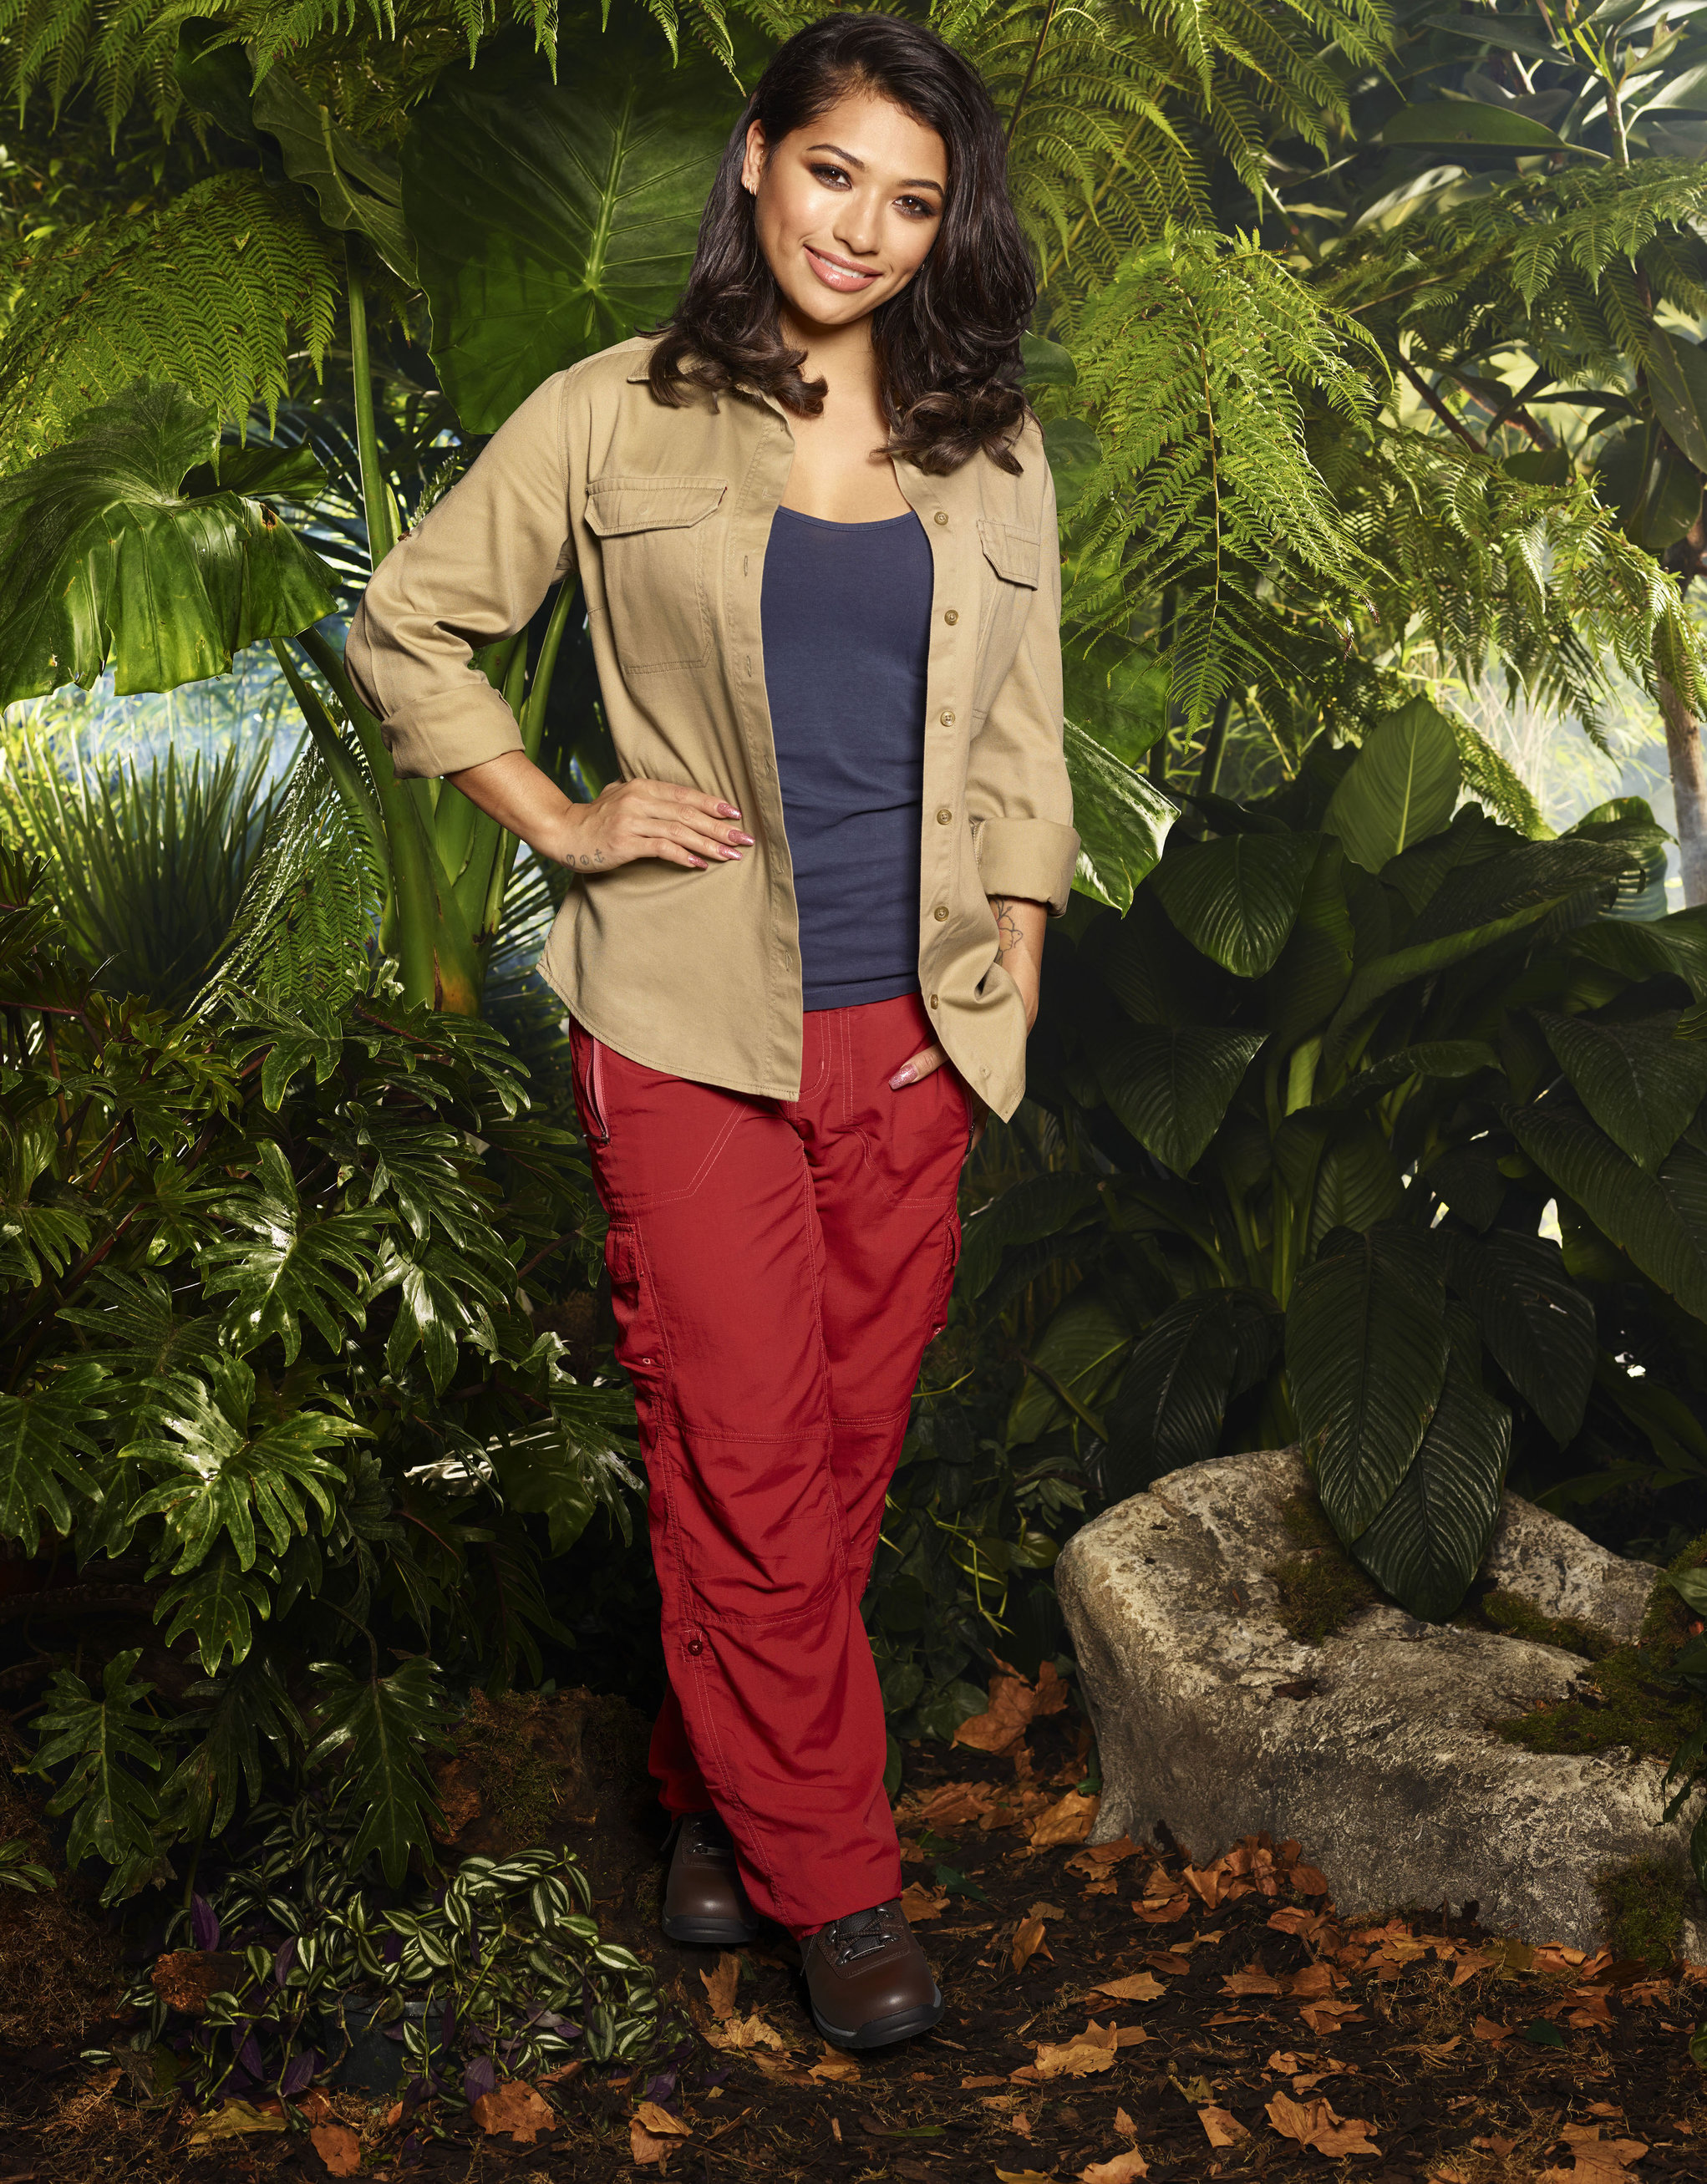 'I'm A Celebrity': Launch Twist Revealed, Giving All The Power To Viewers